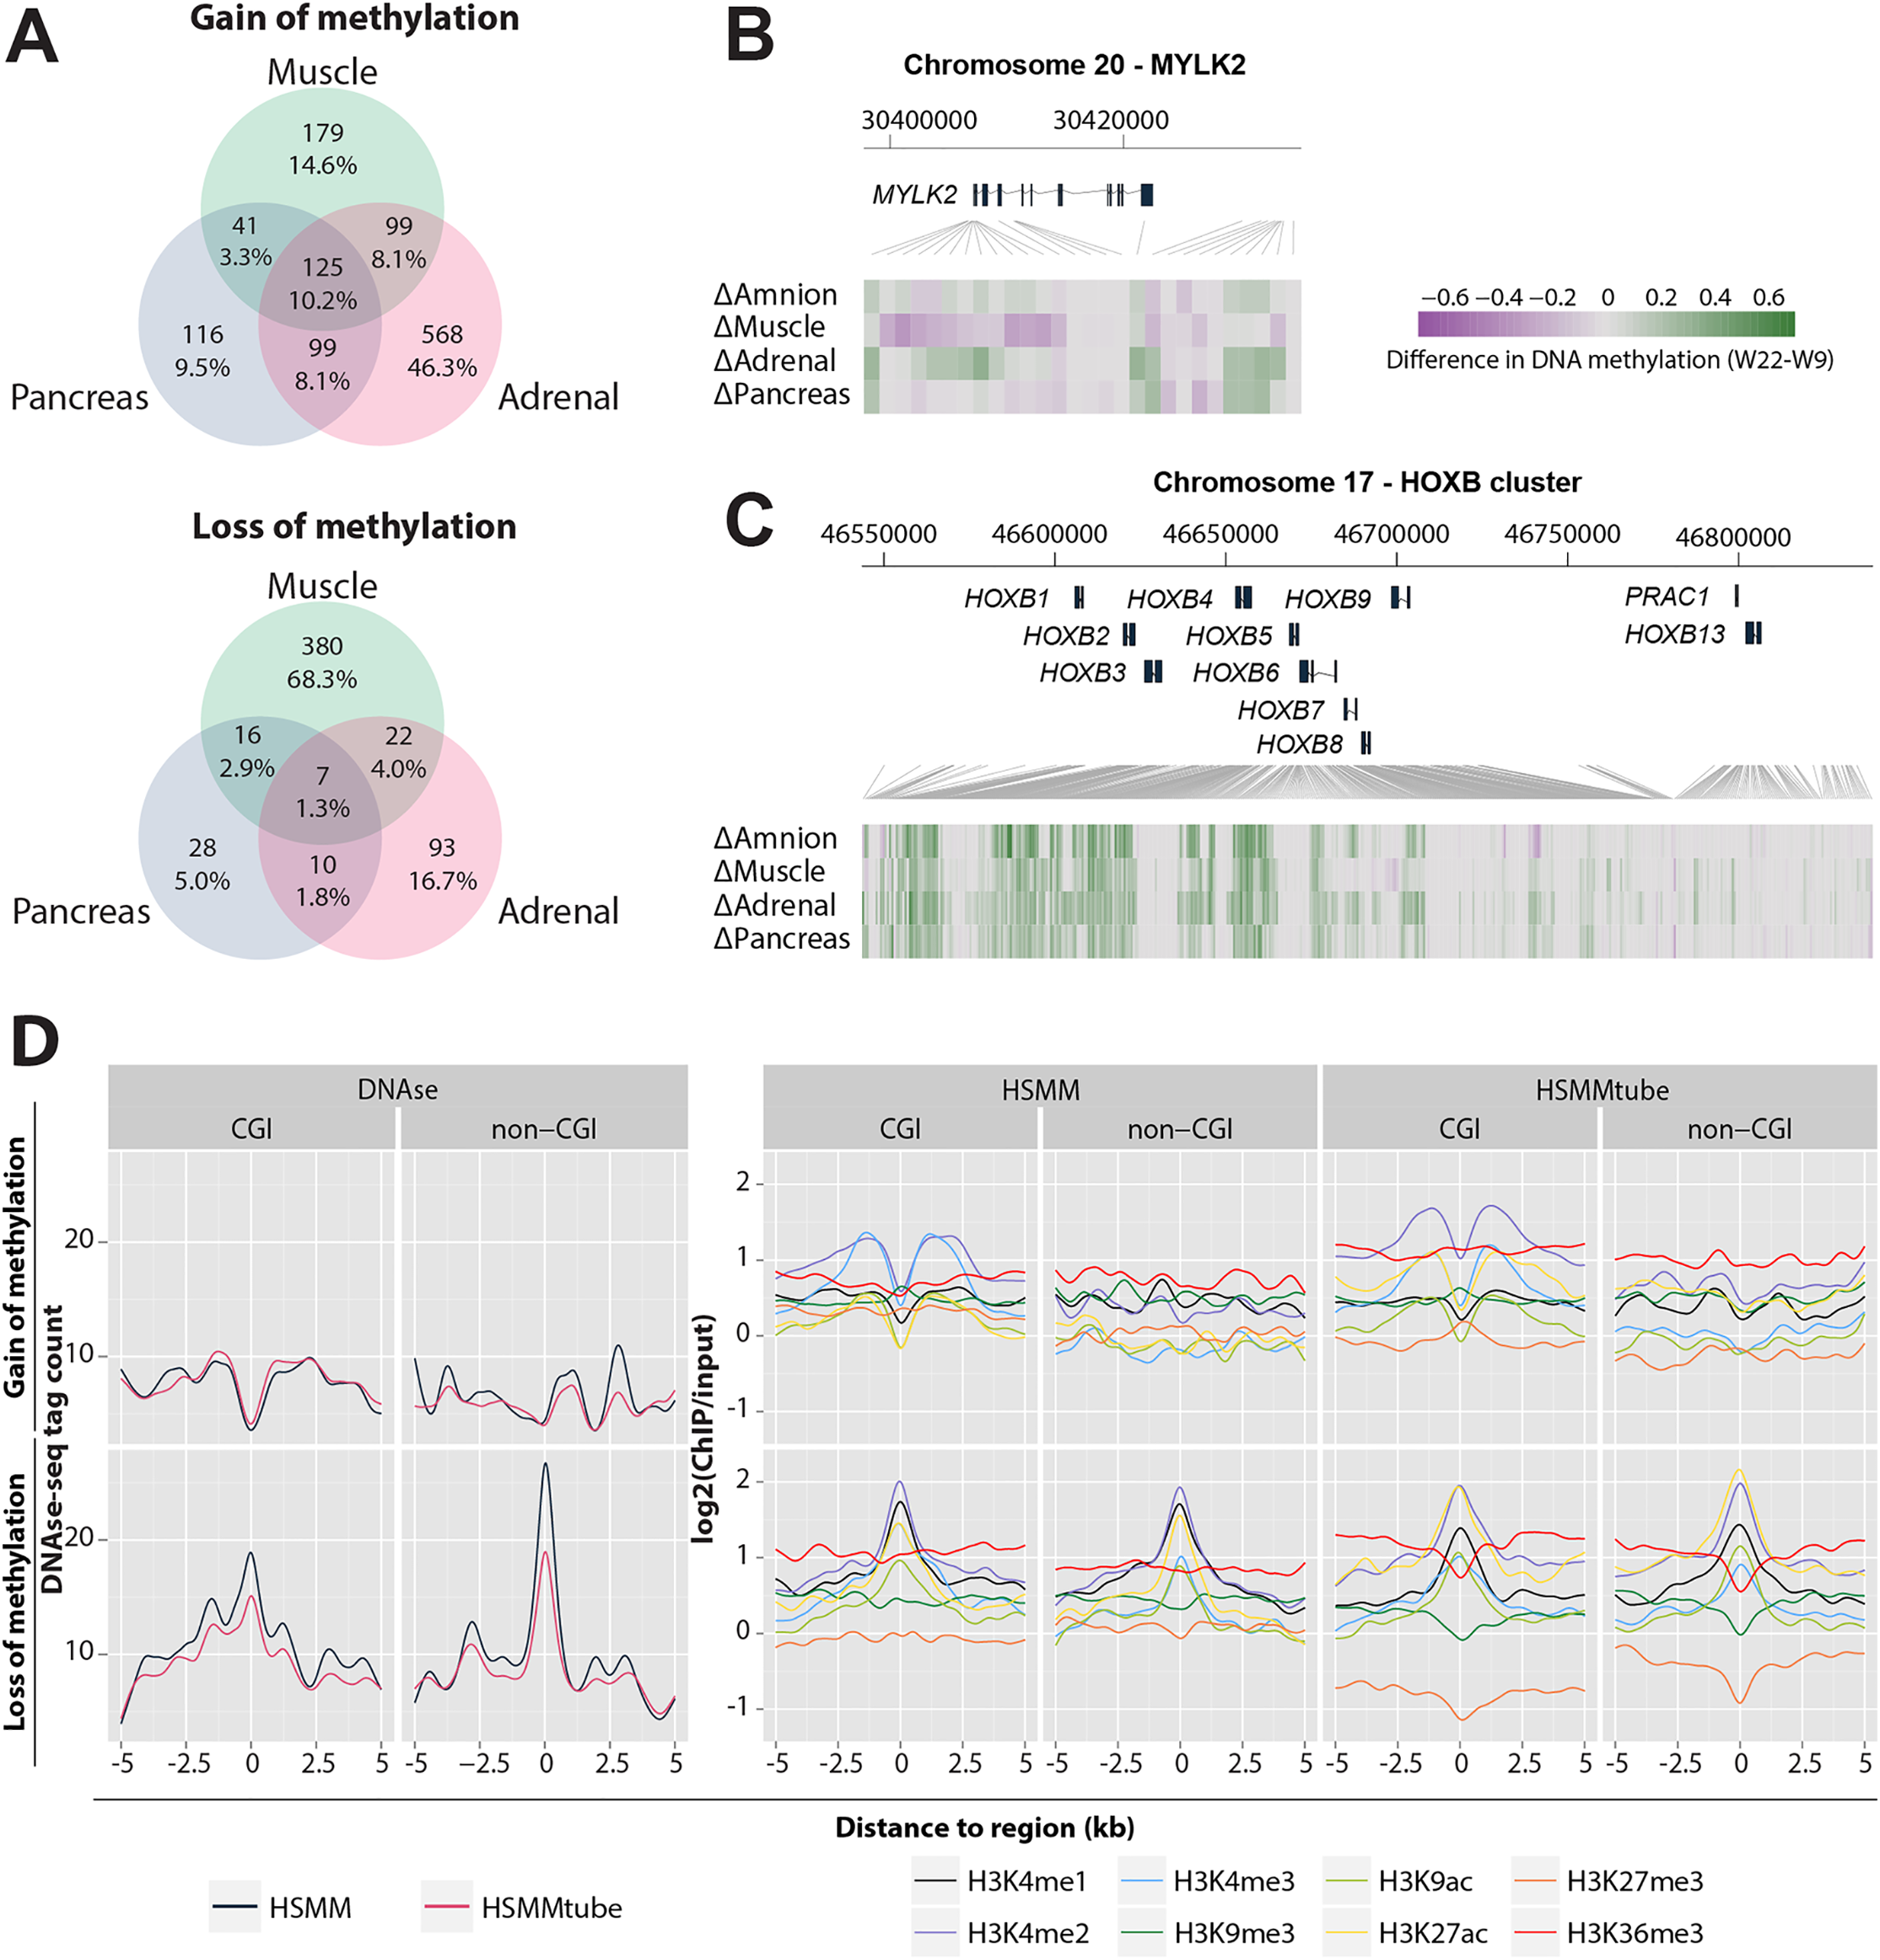 Association of gain and loss of DNA methylation, DNAse I hypersensitive sites and histone modifications.